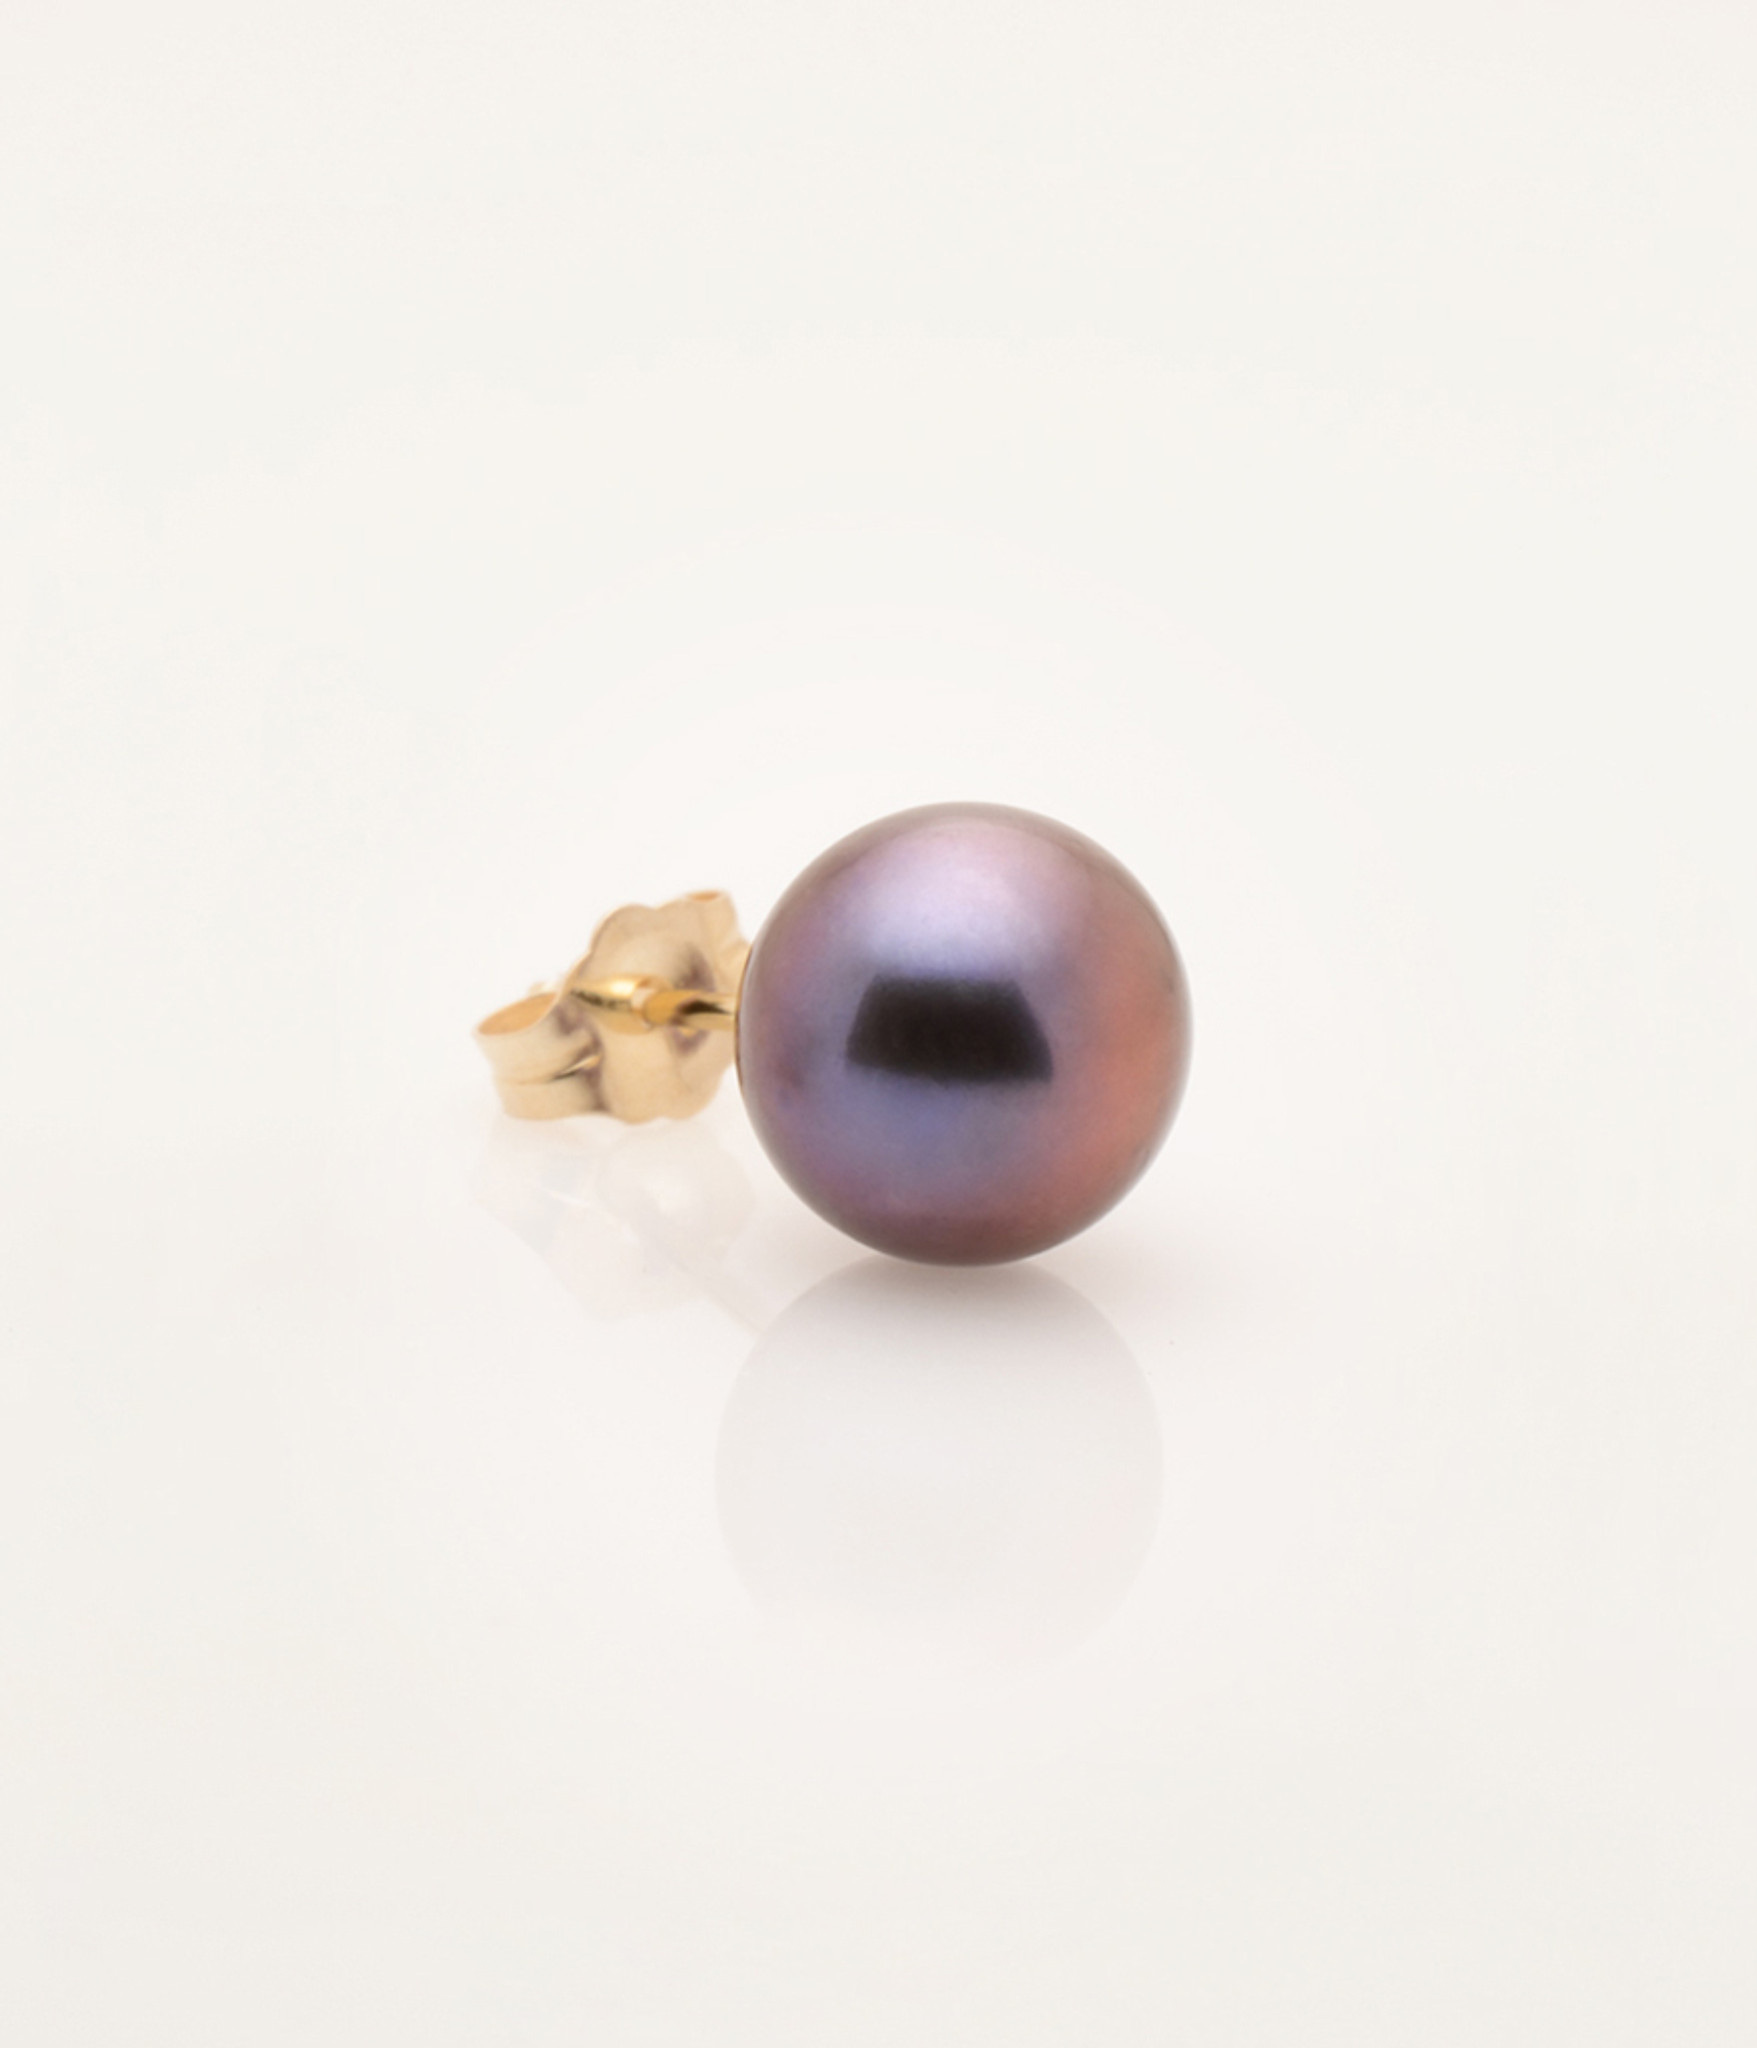 Side view of Single Cultured Freshwater Black Pearl Earring with 14k Gold Post by Jewelry Designer Nektar De Stagni(8.5 mm)